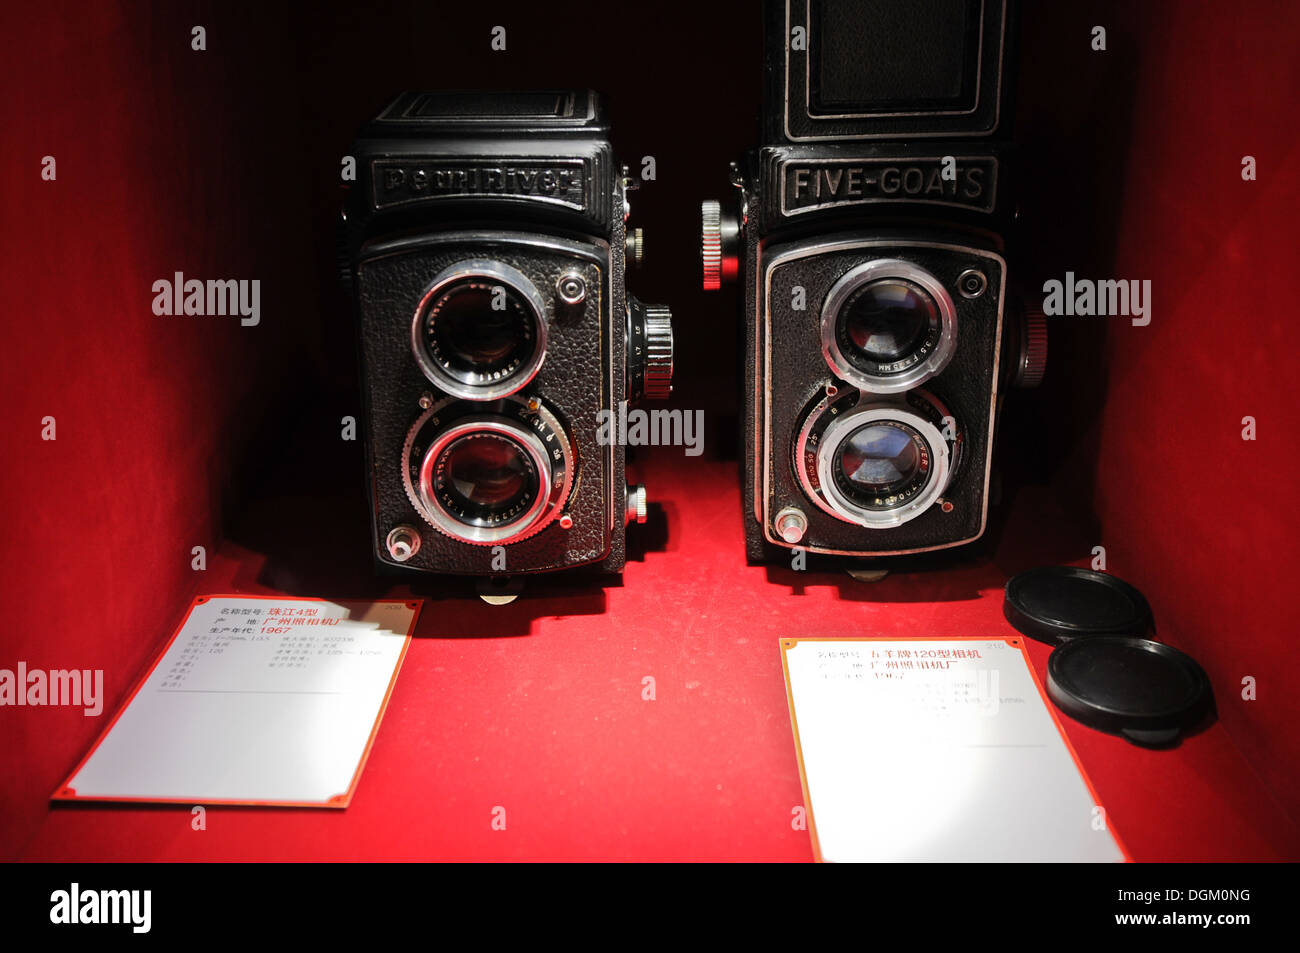 Pearl River camera from 1967 and Five Goats from also from 1967 in Museum of Old Camera Manufacturing in Shanghai, China - Stock Image